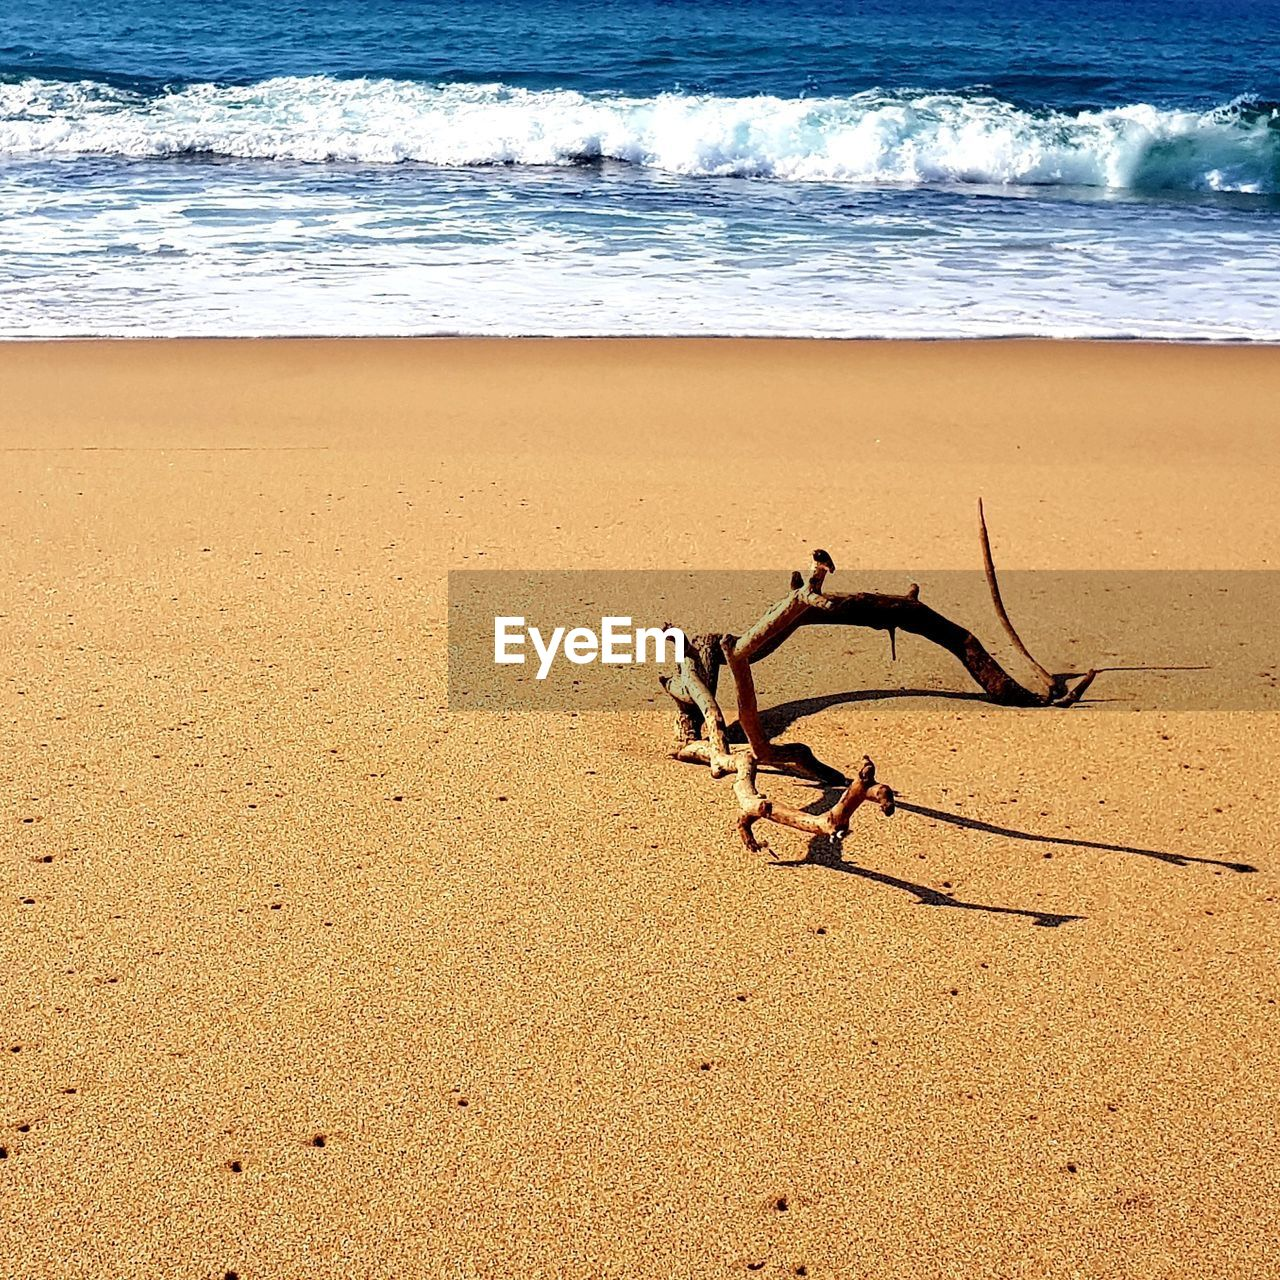 beach, land, sea, sand, water, wave, beauty in nature, nature, motion, tranquility, scenics - nature, tranquil scene, day, no people, outdoors, horizon over water, sunlight, idyllic, horizon, driftwood